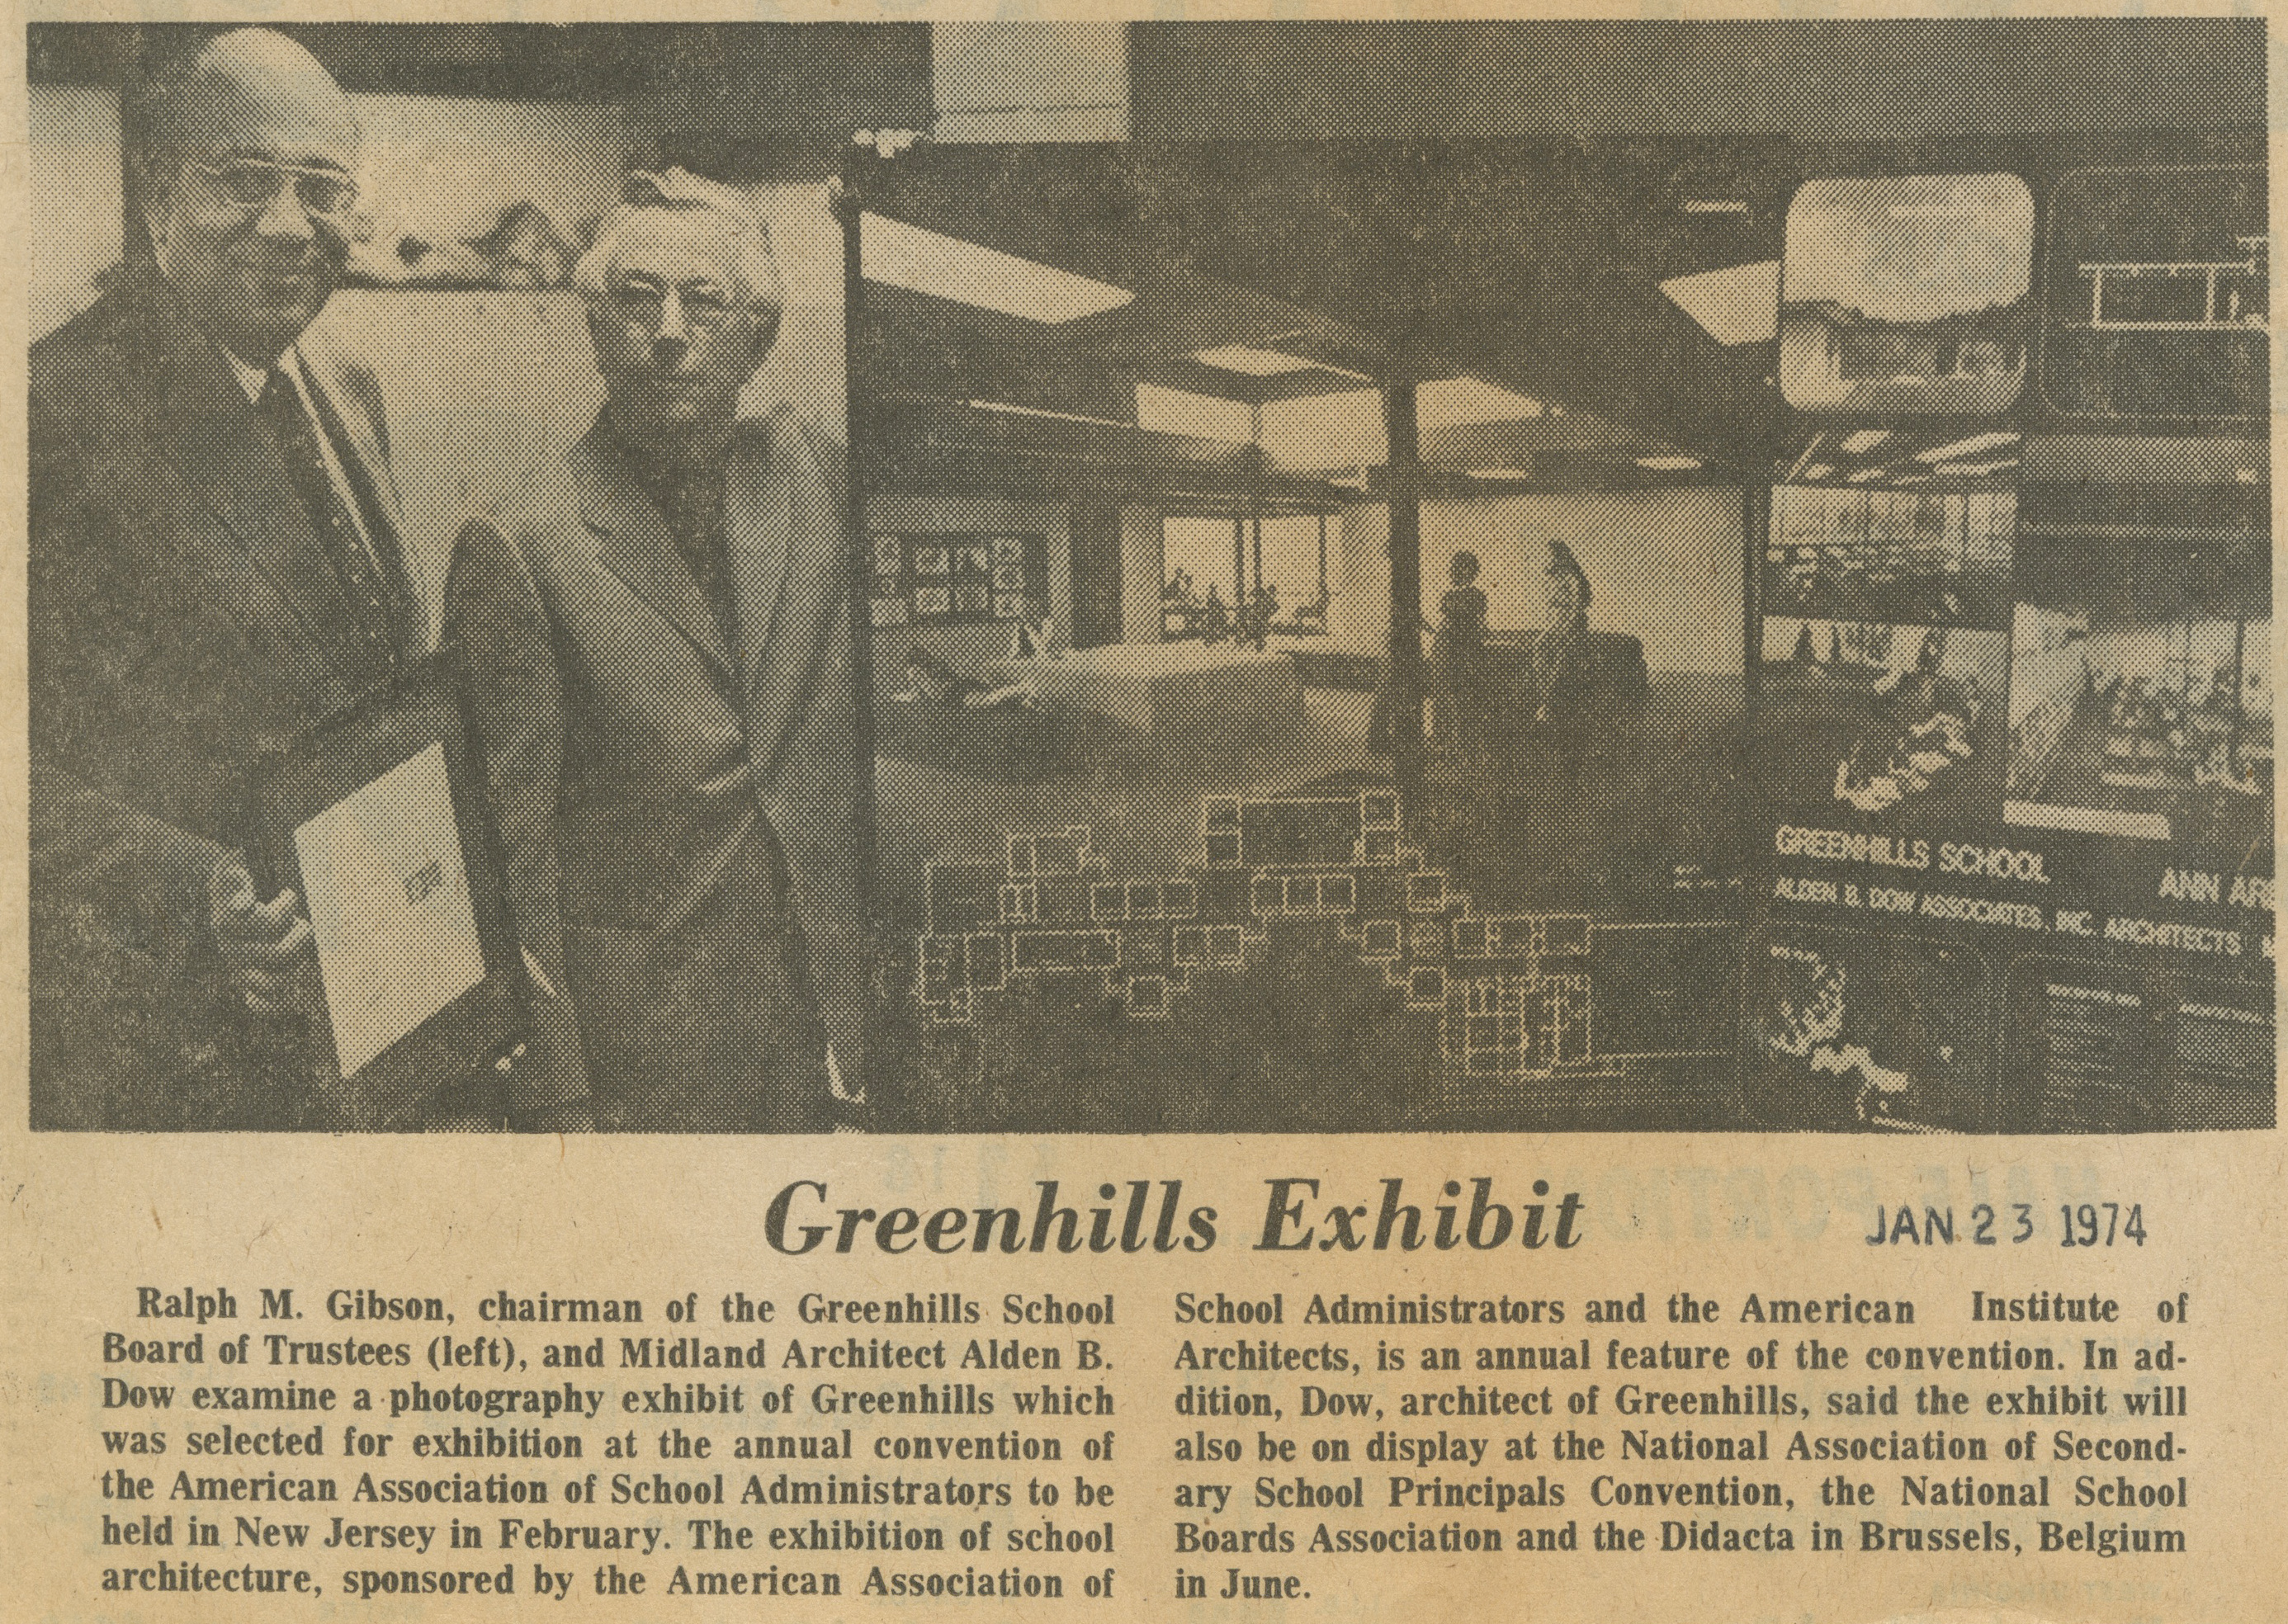 Greenhills Exhibit image